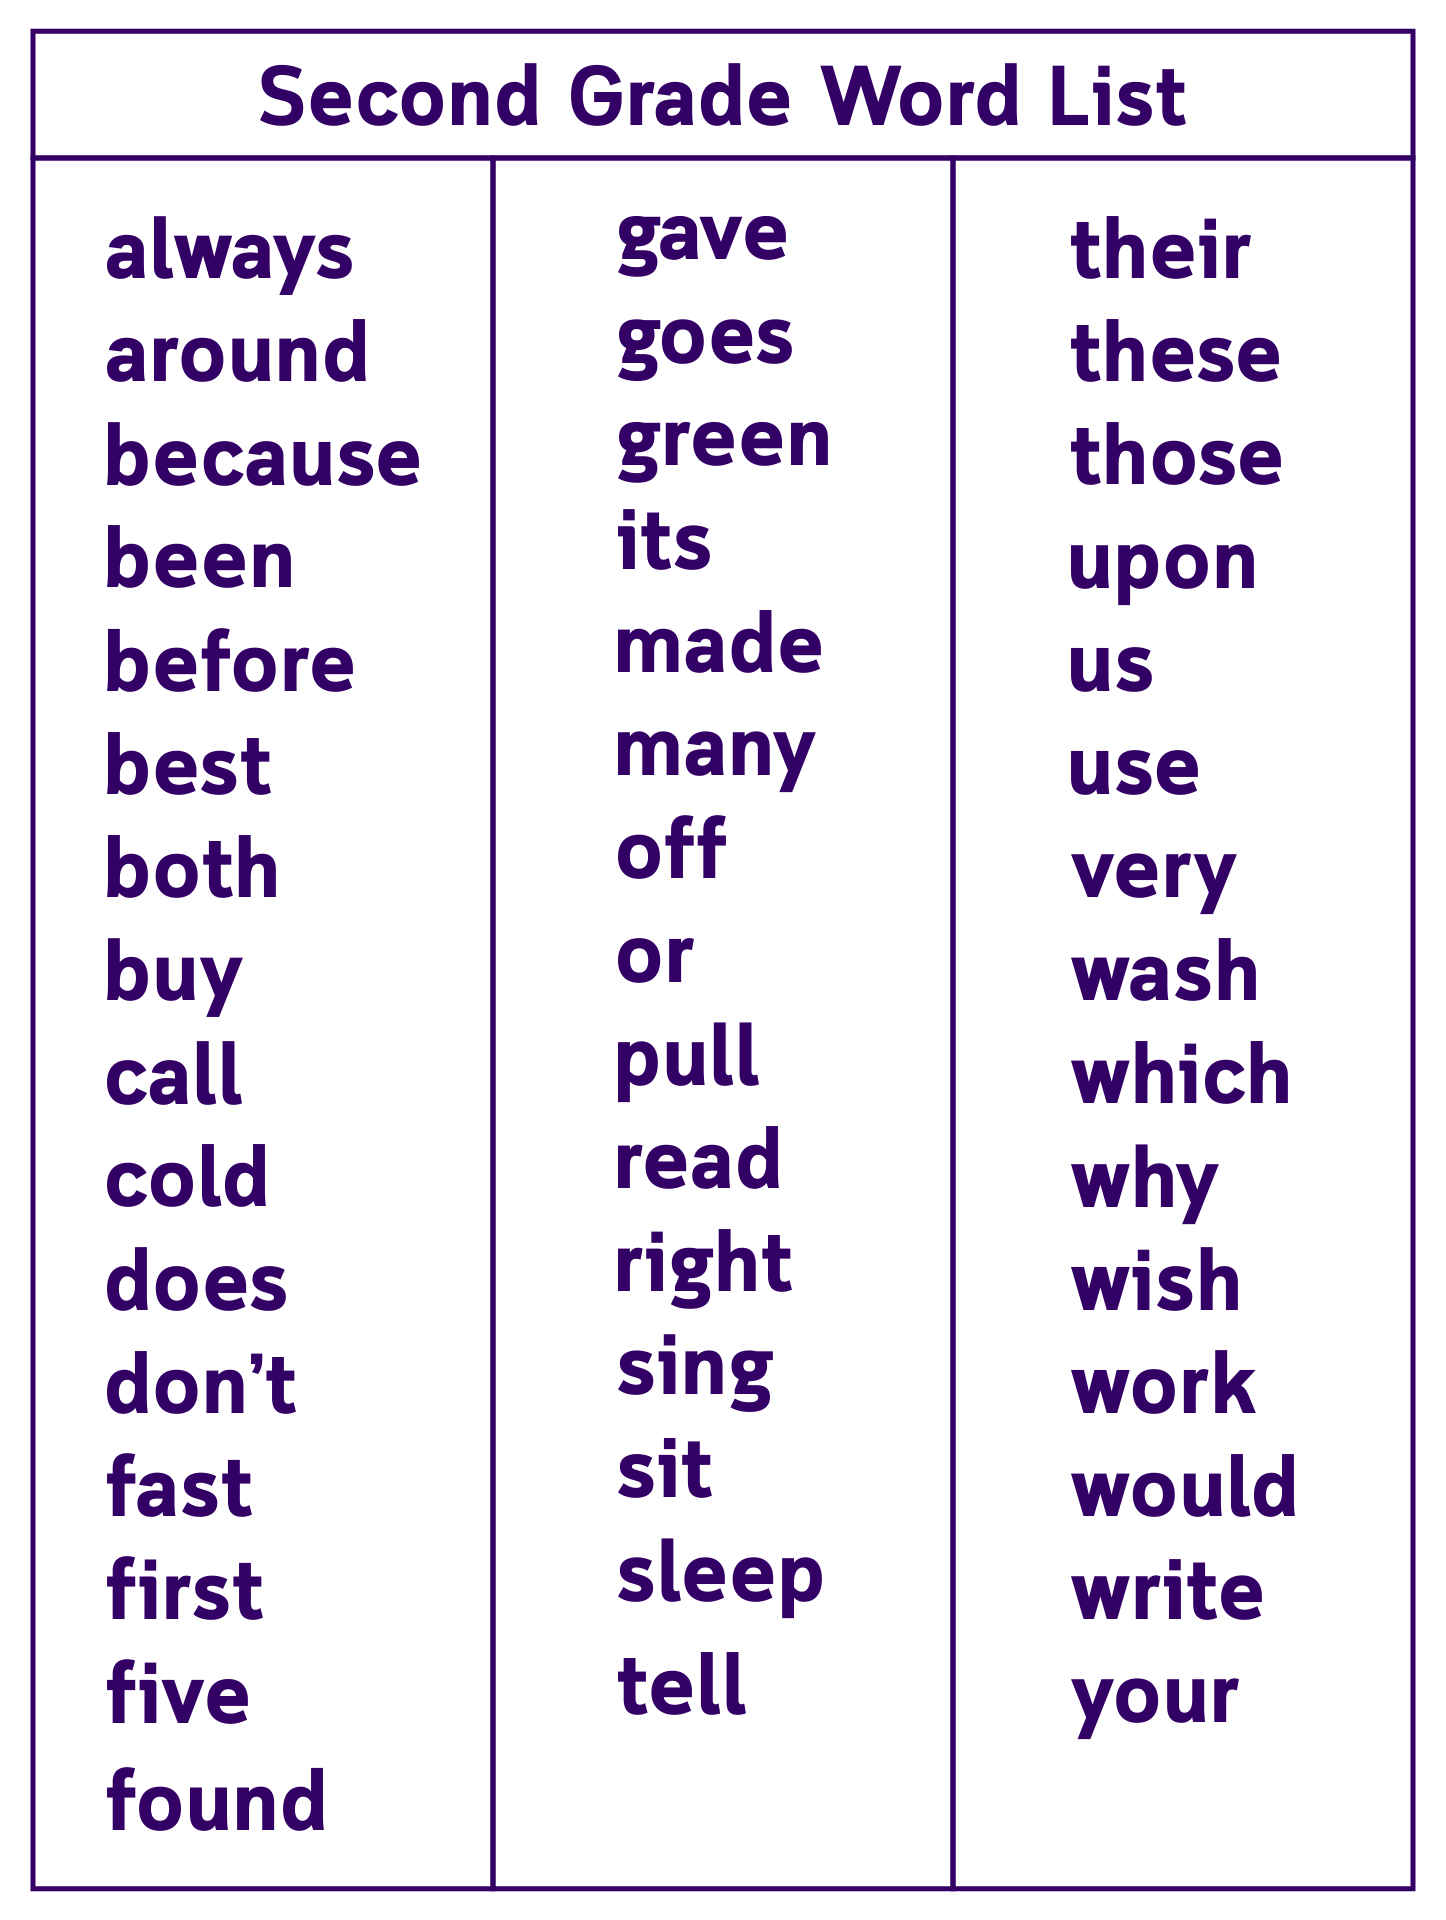 Second Grade Sight Words Printable